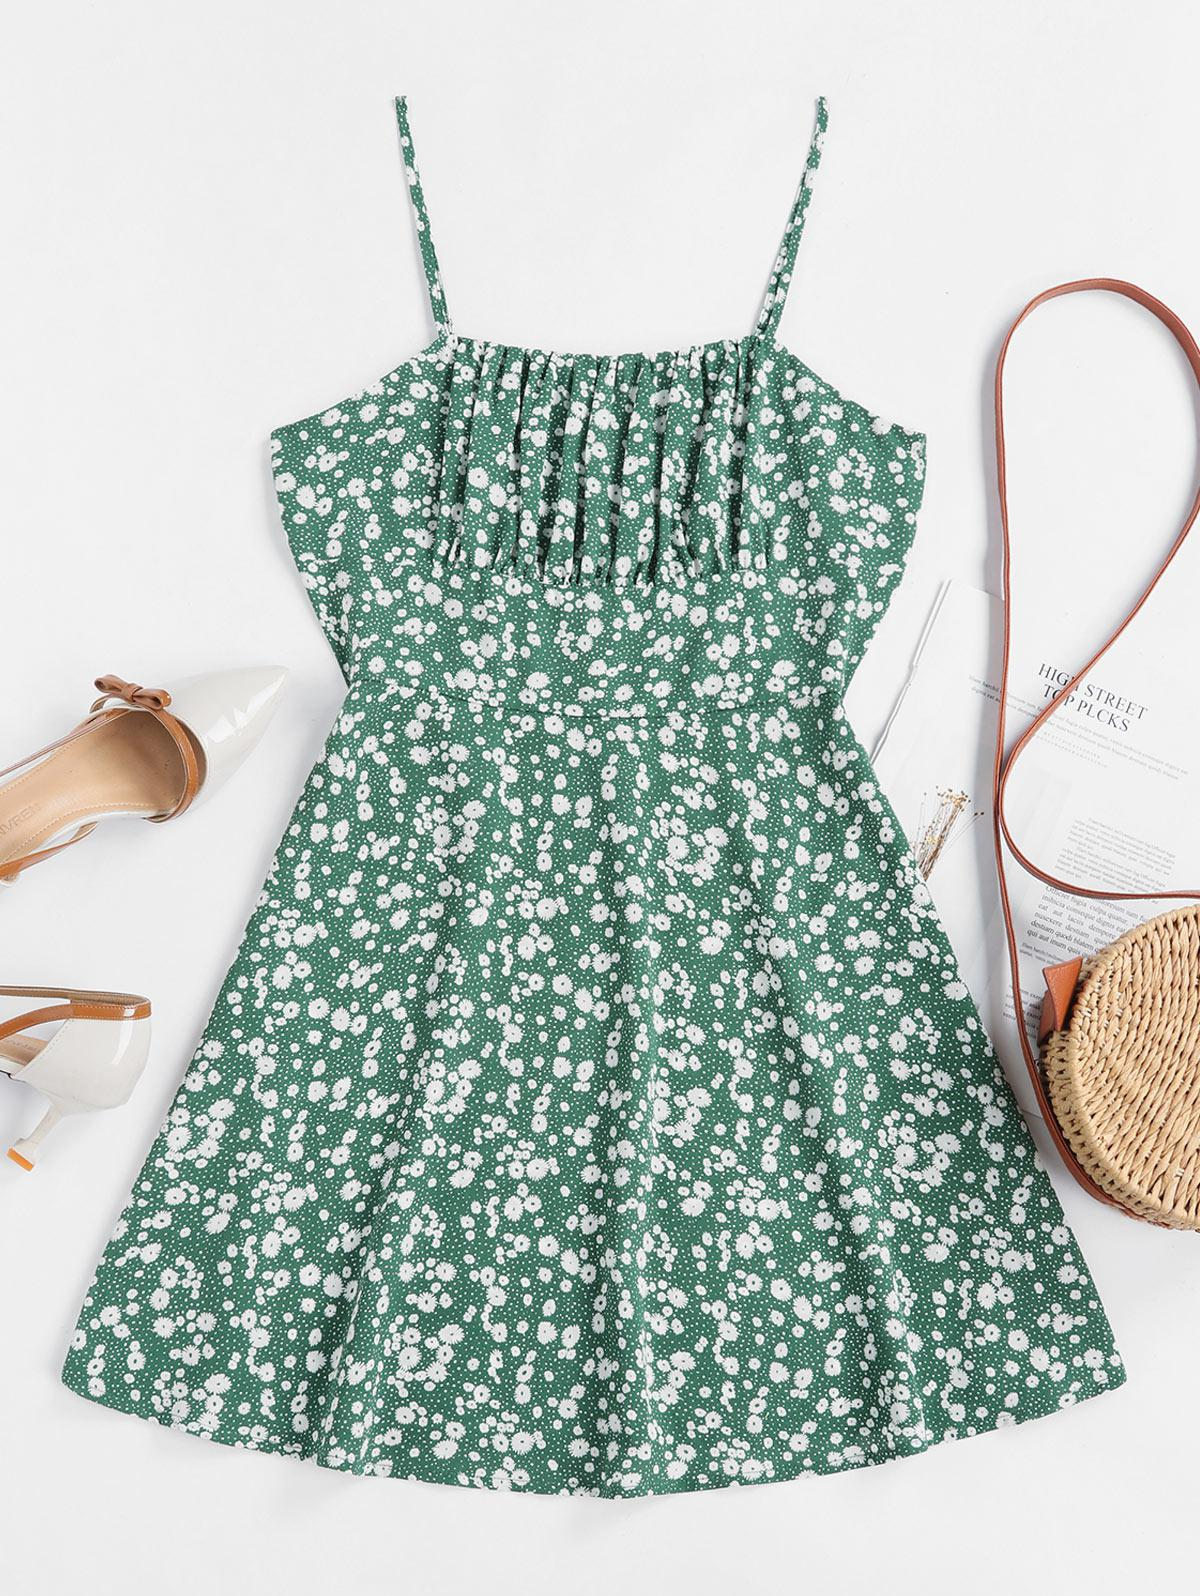 ZAFUL Tiny Floral Empire Waist Flare Dress